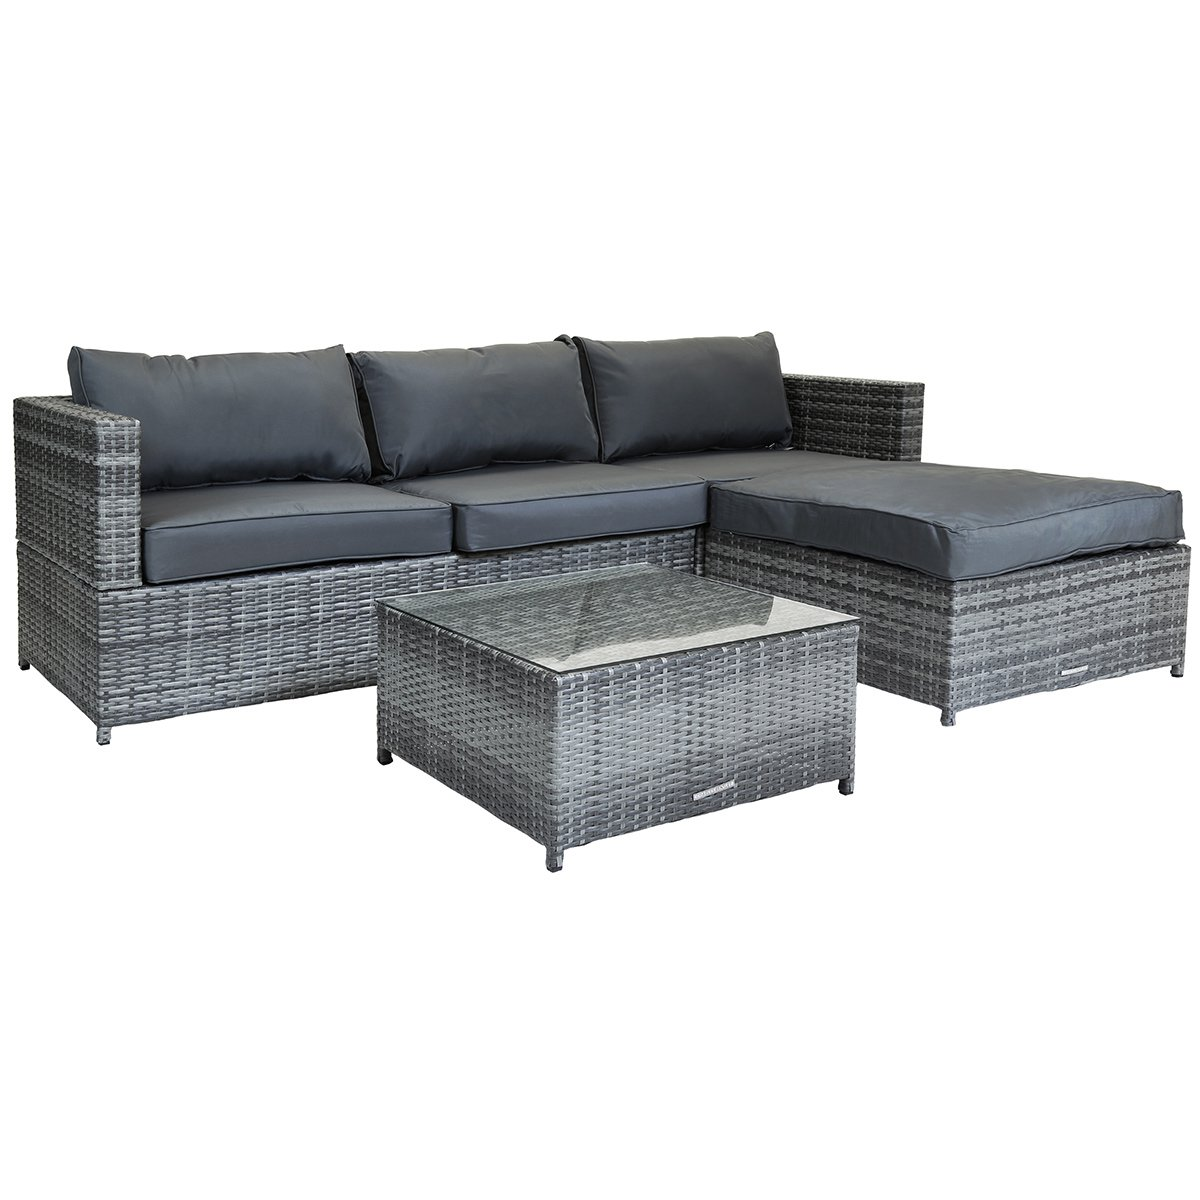 L Shaped Rattan Garden Sofa L Shaped 3 Seater Outdoor Rattan Furniture Lounge Set